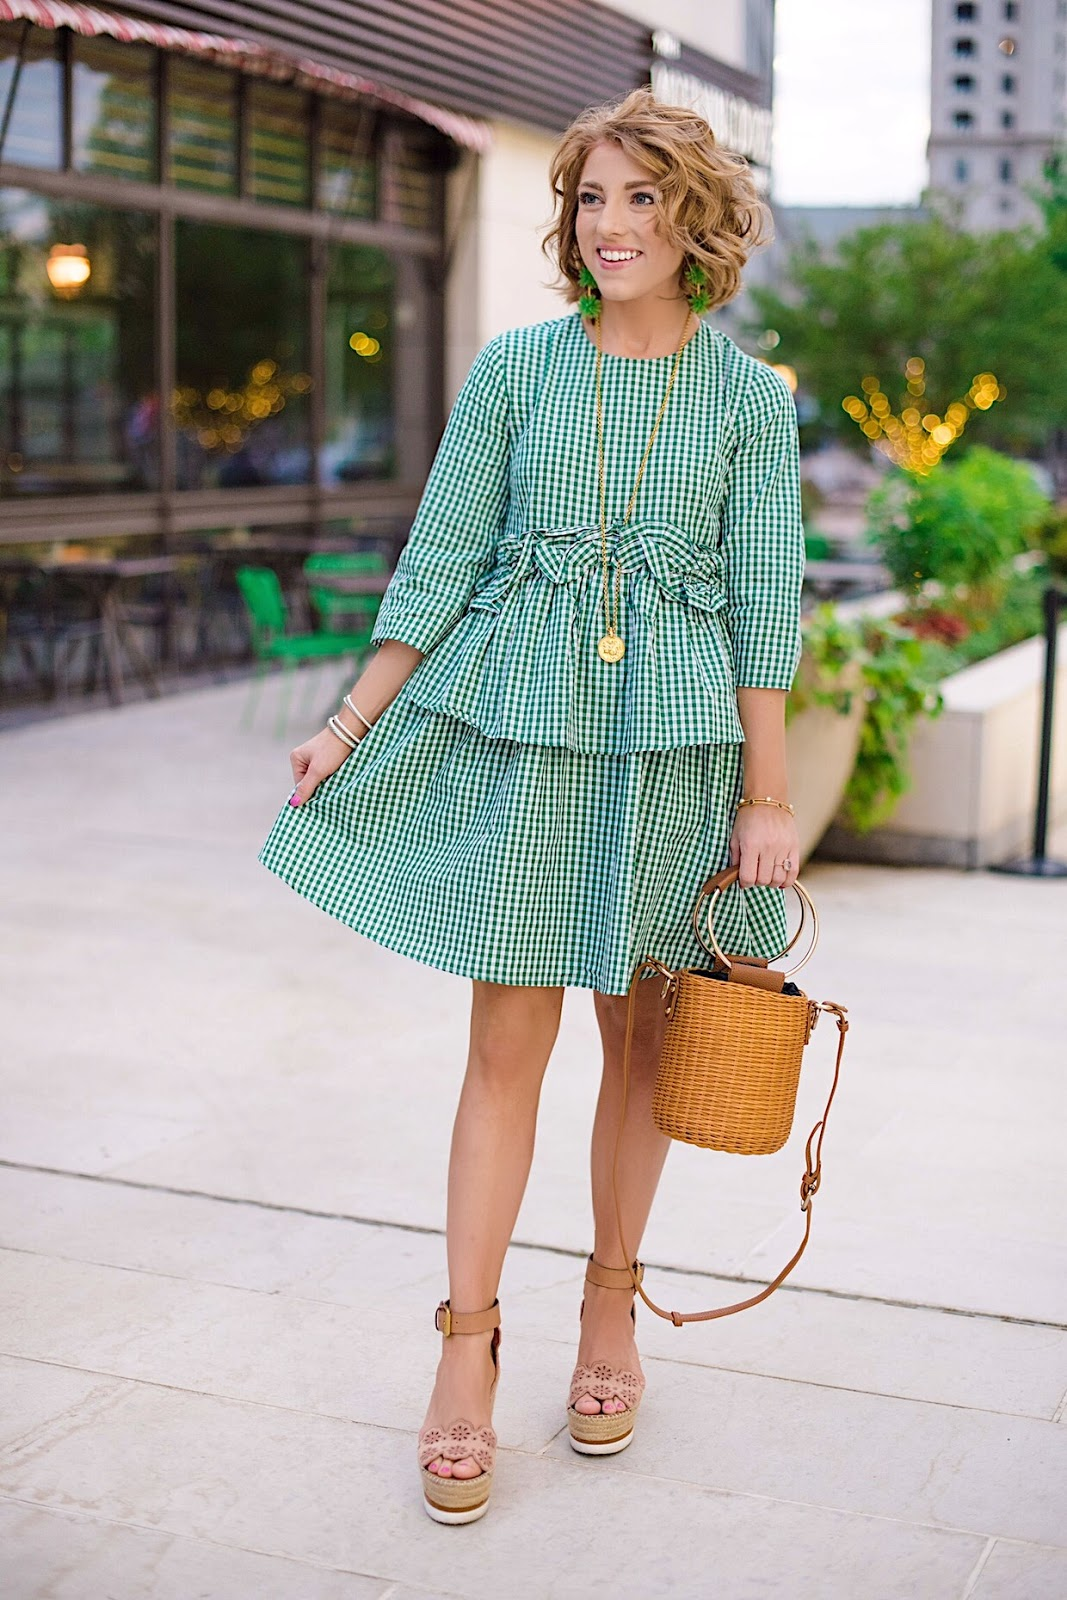 Emerald Green Ruffle Gingham Dress - Something Delightful Blog